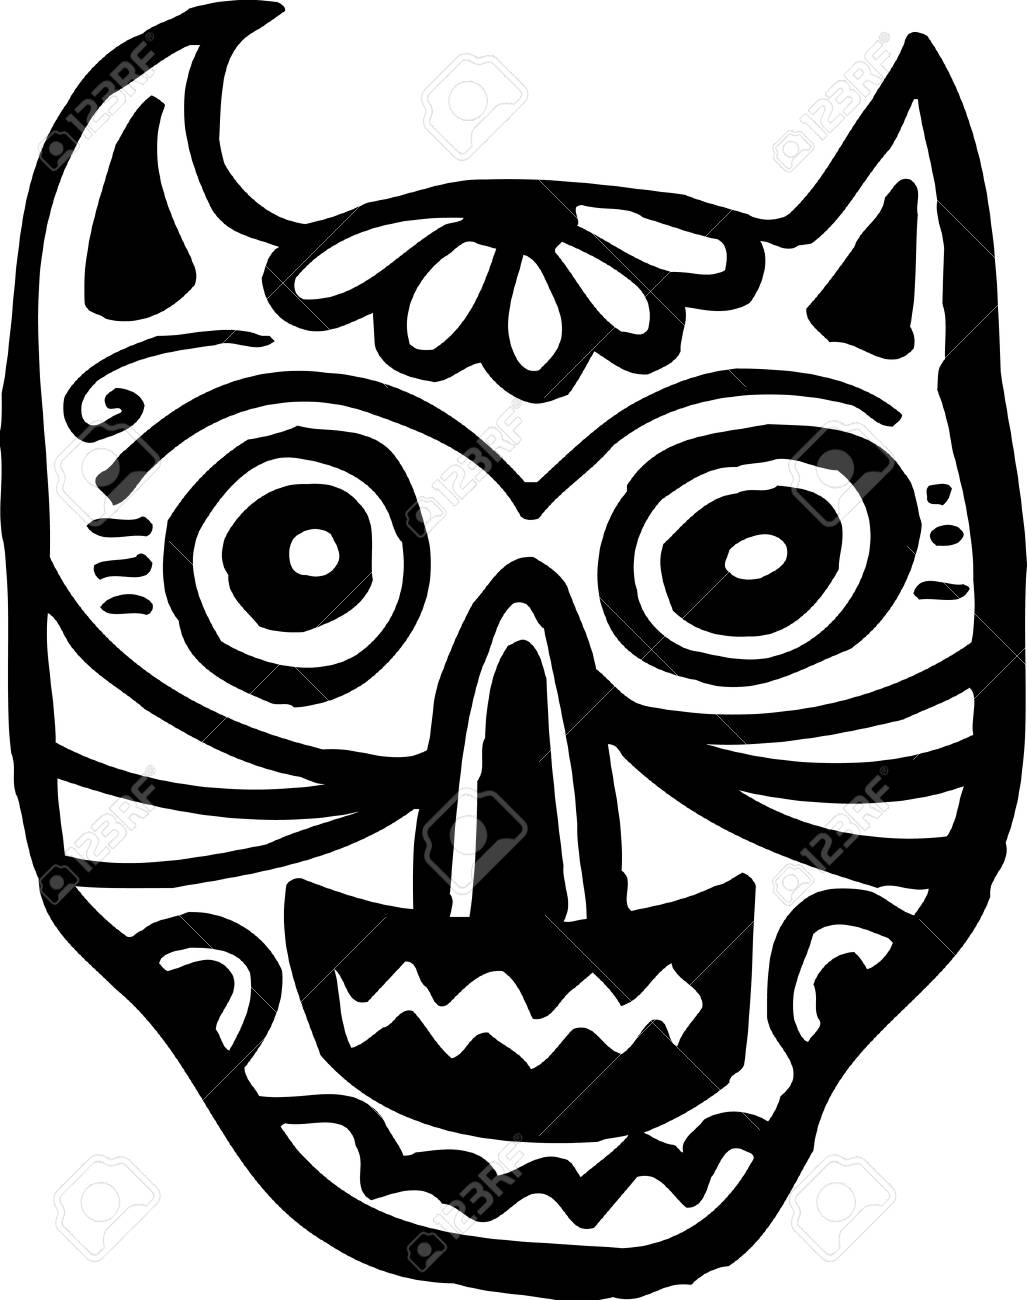 A black and white cat skull graphically represented Stock Photo - 14864855